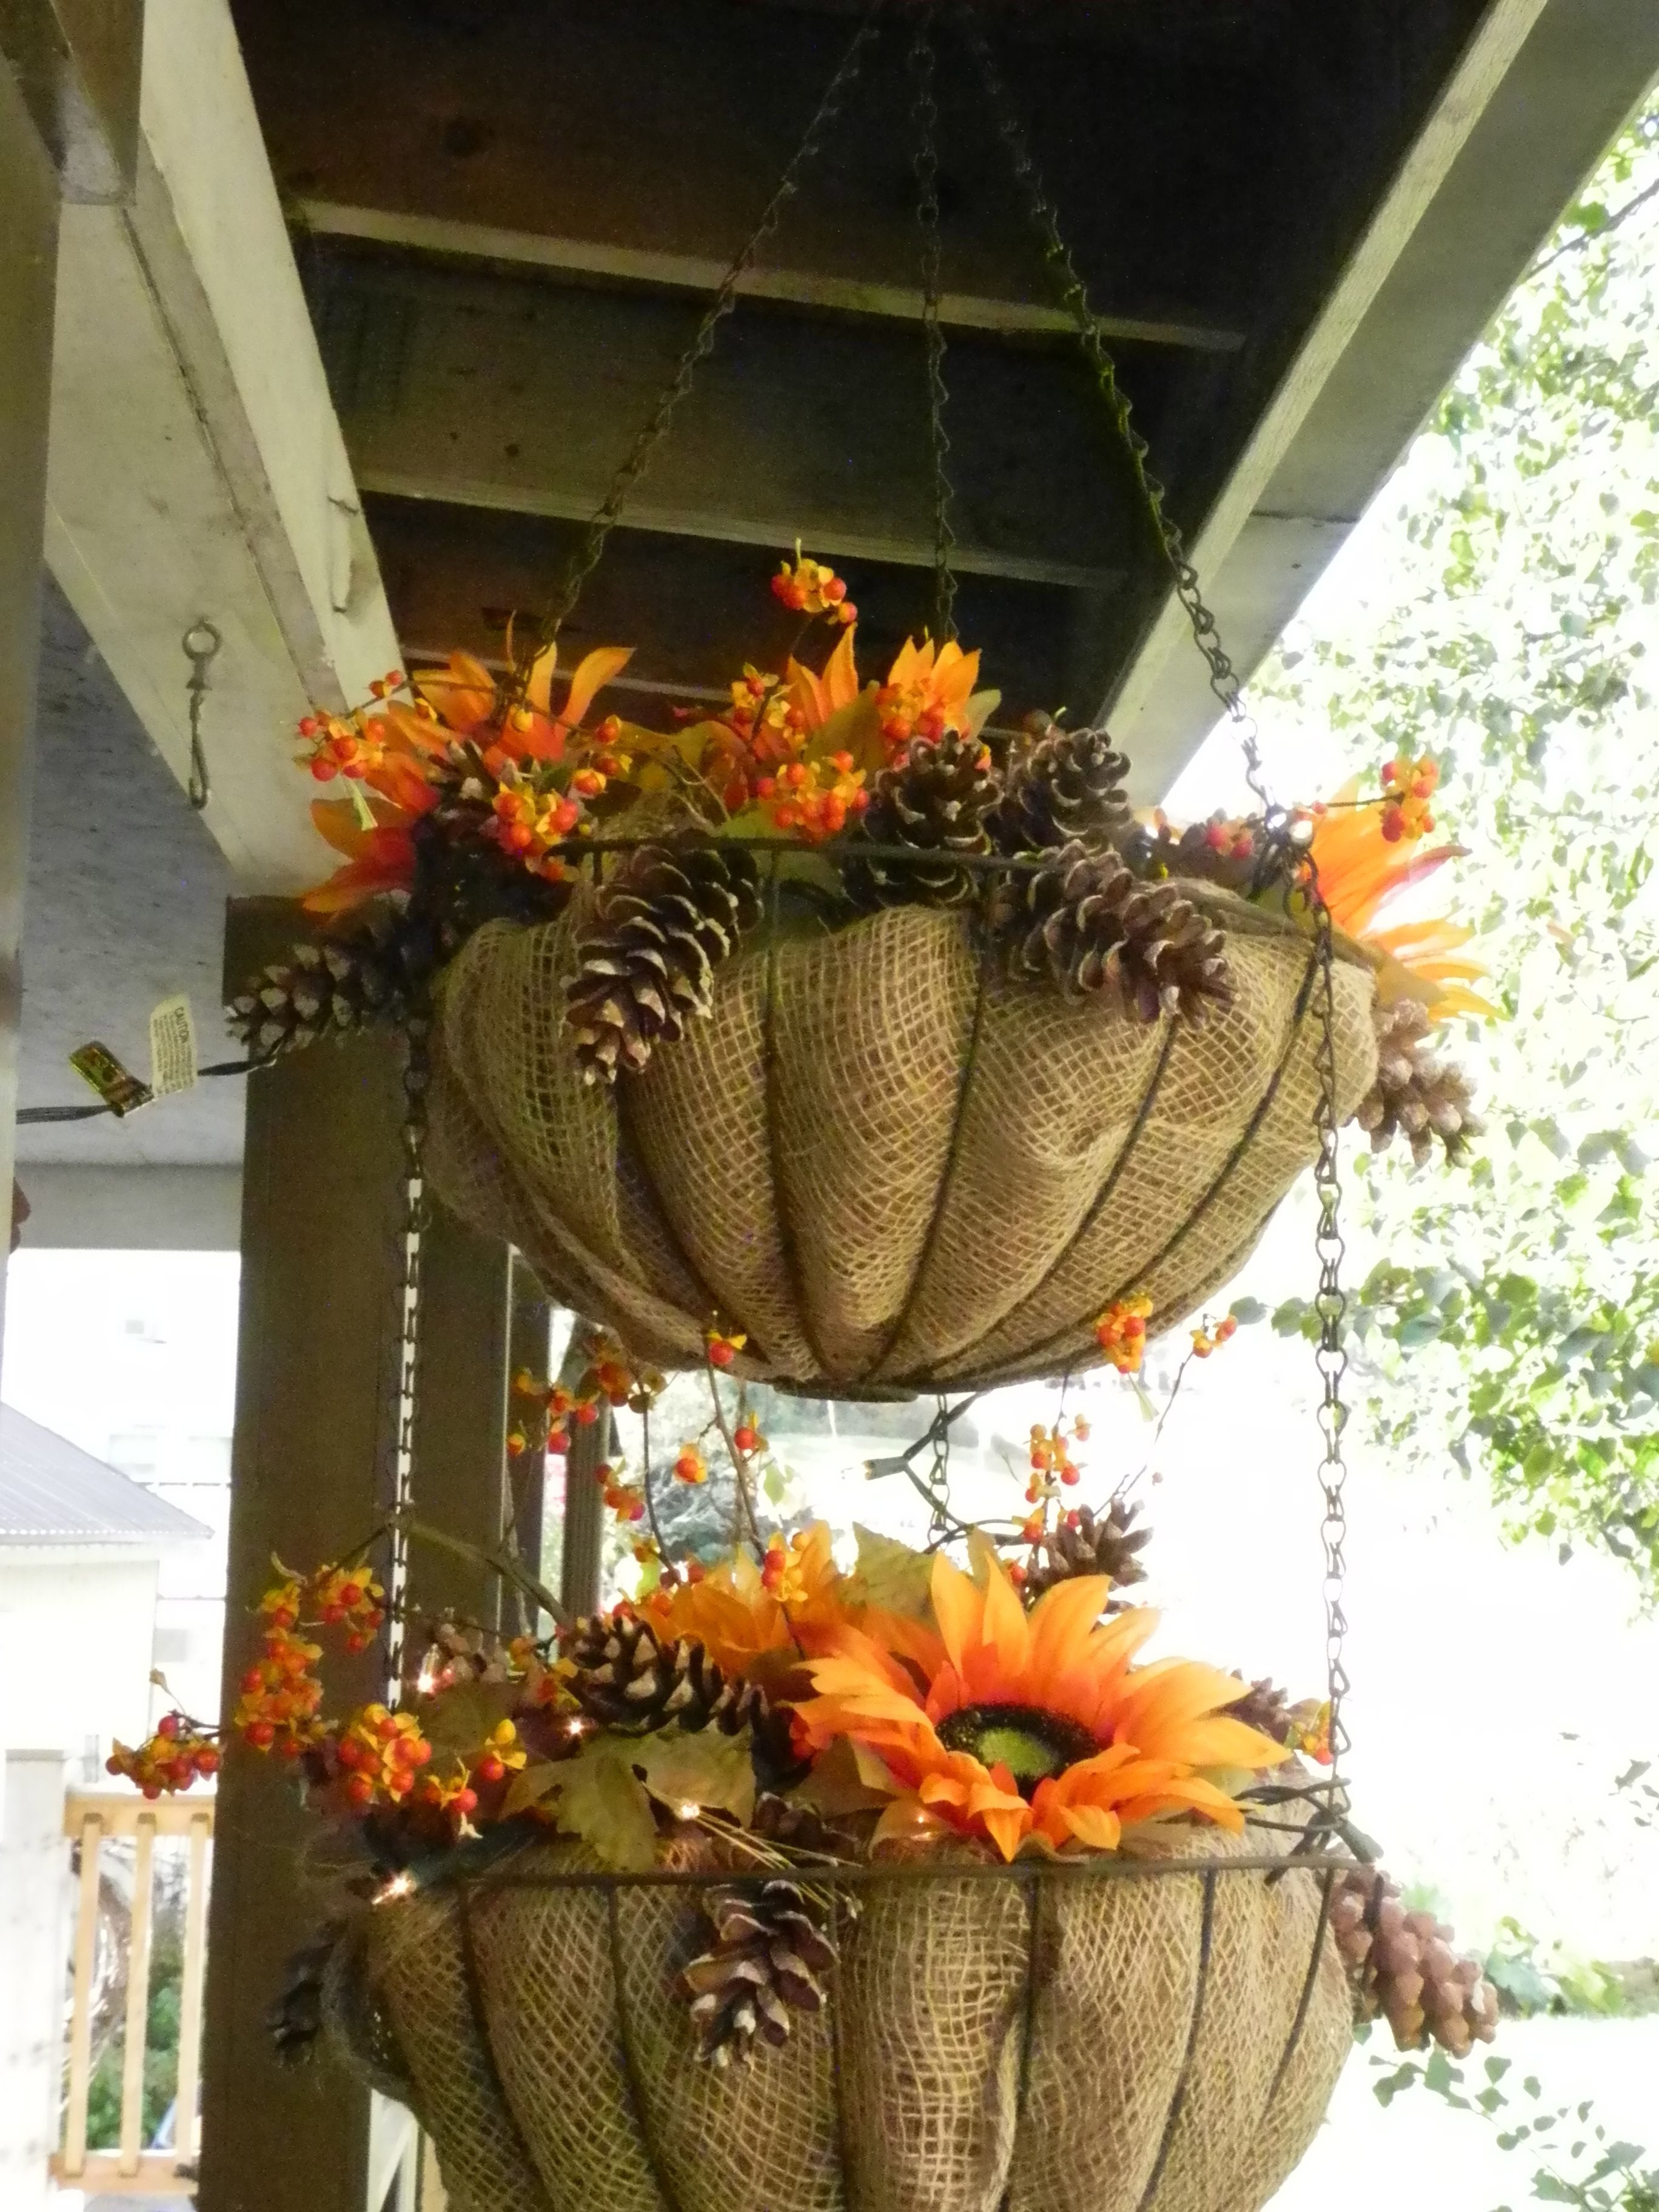 Hanging Flower Baskets With Lights : Double wire hanging baskets burlap lined tiny lights